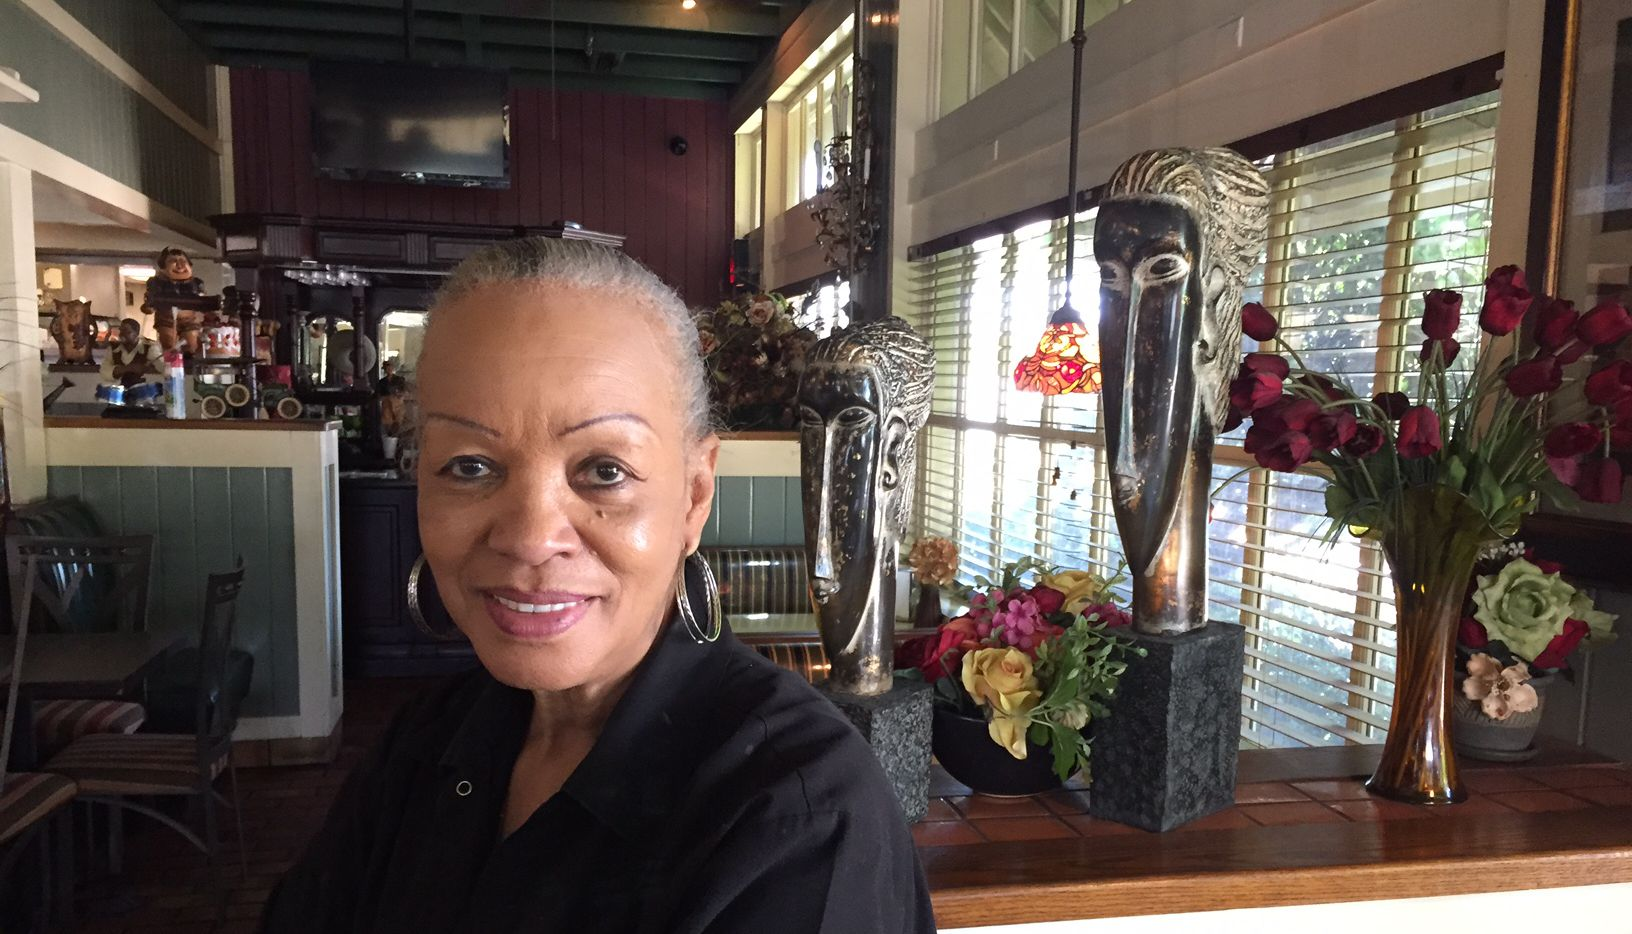 Lorraine Carter, 69, former manager of South Dallas Cafe and still an employee, said she was looking forward to watching the Interfaith Tribute all day. But she became too emotional before it started and decided she couldn't stand to watch.